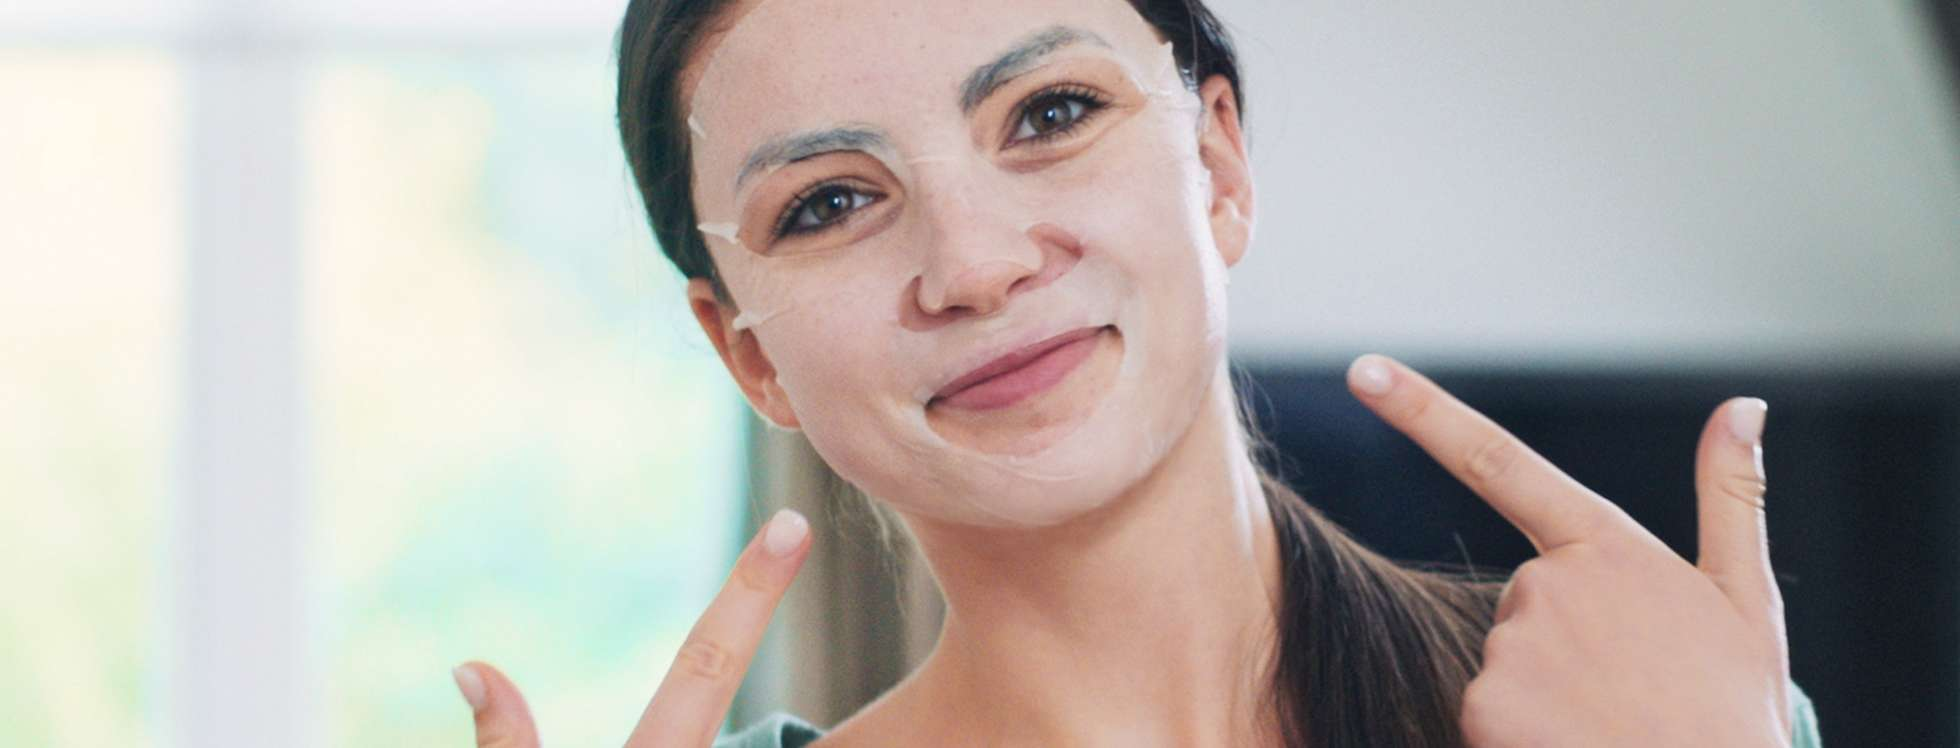 Smiling girl wearing a sheet mask pointing at her face